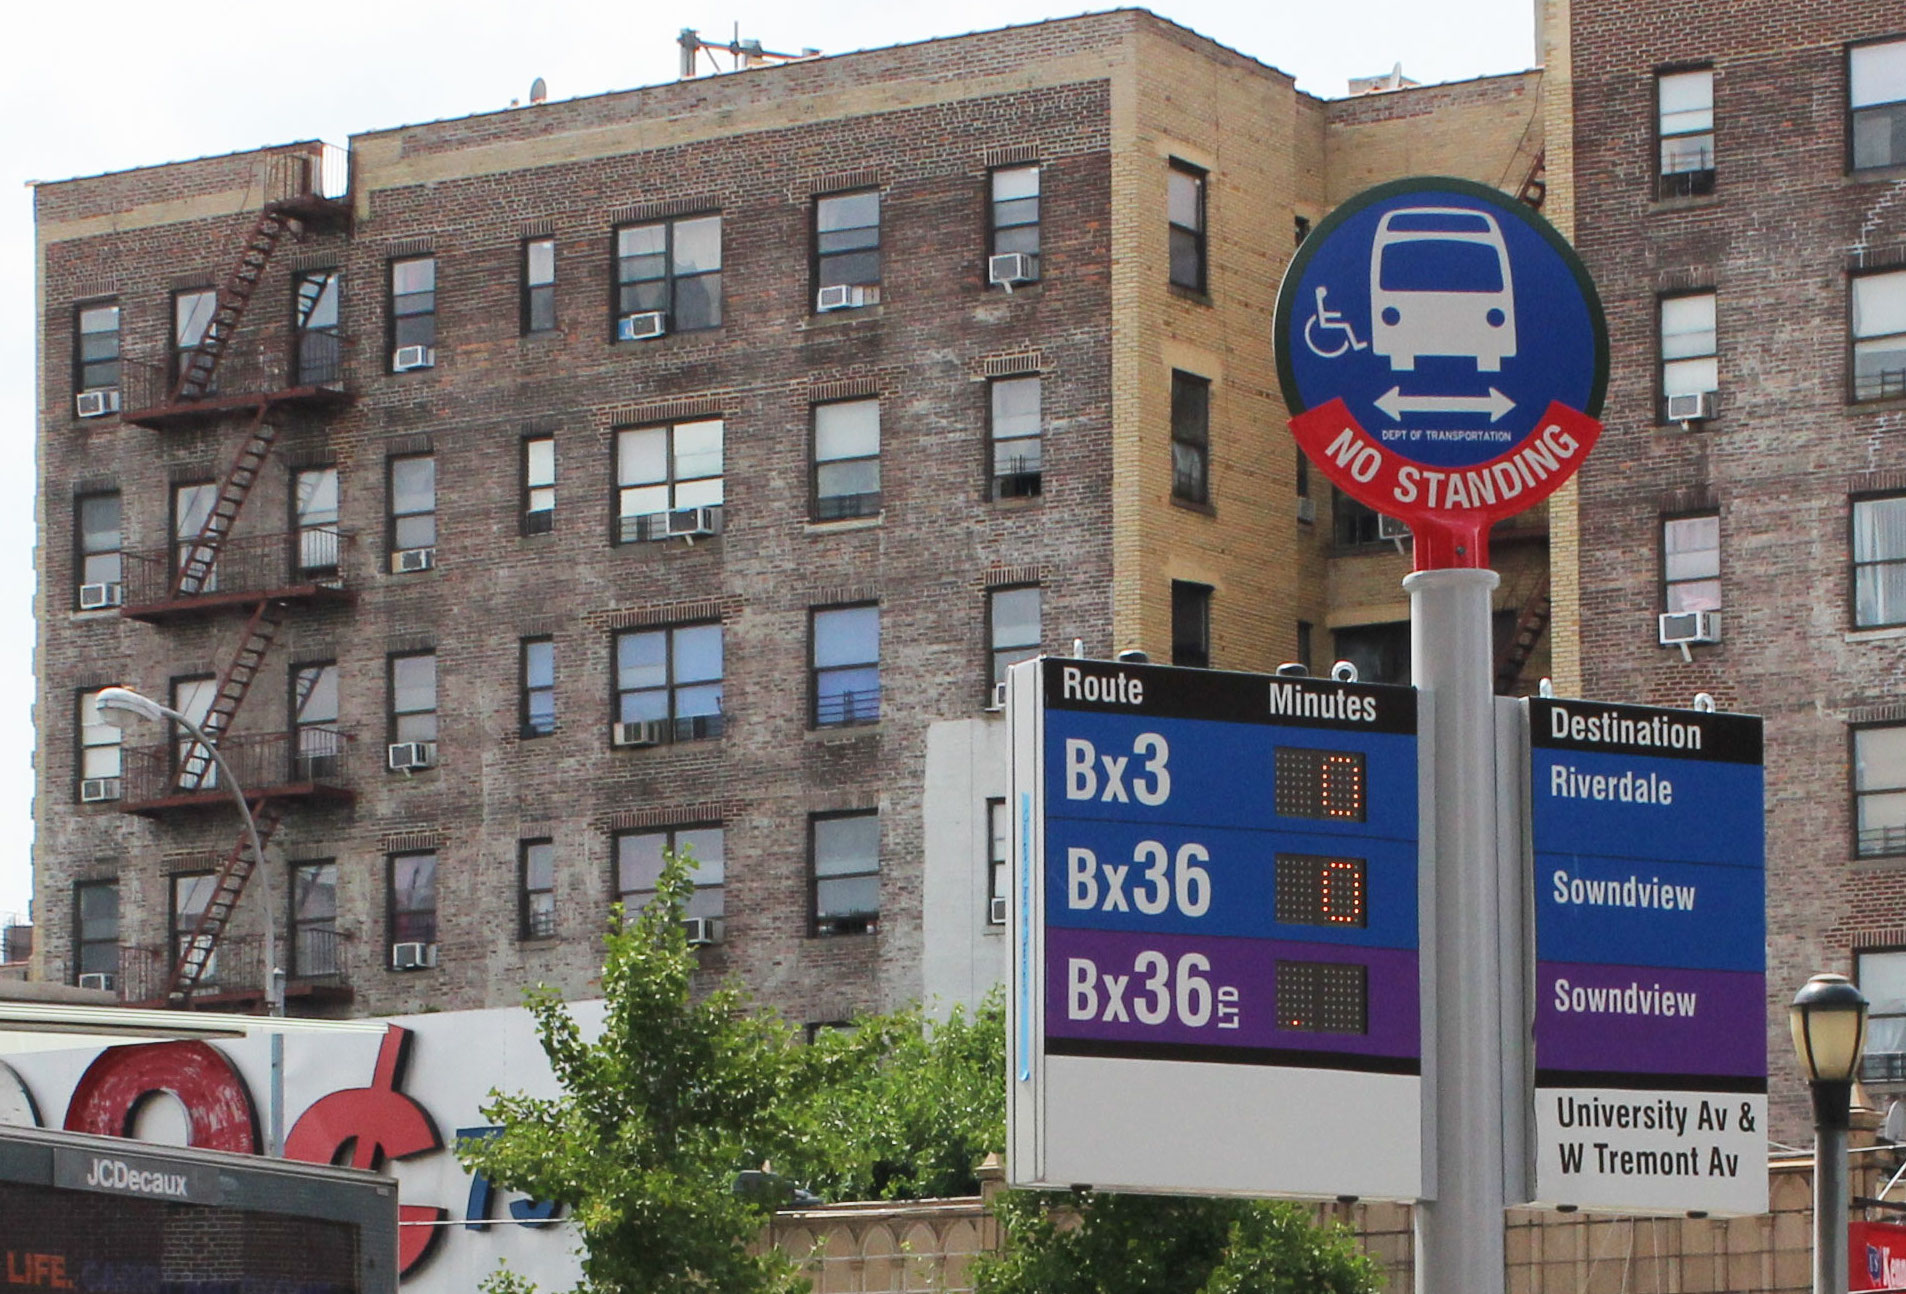 Bus Countdown Clocks Come to the Bronx